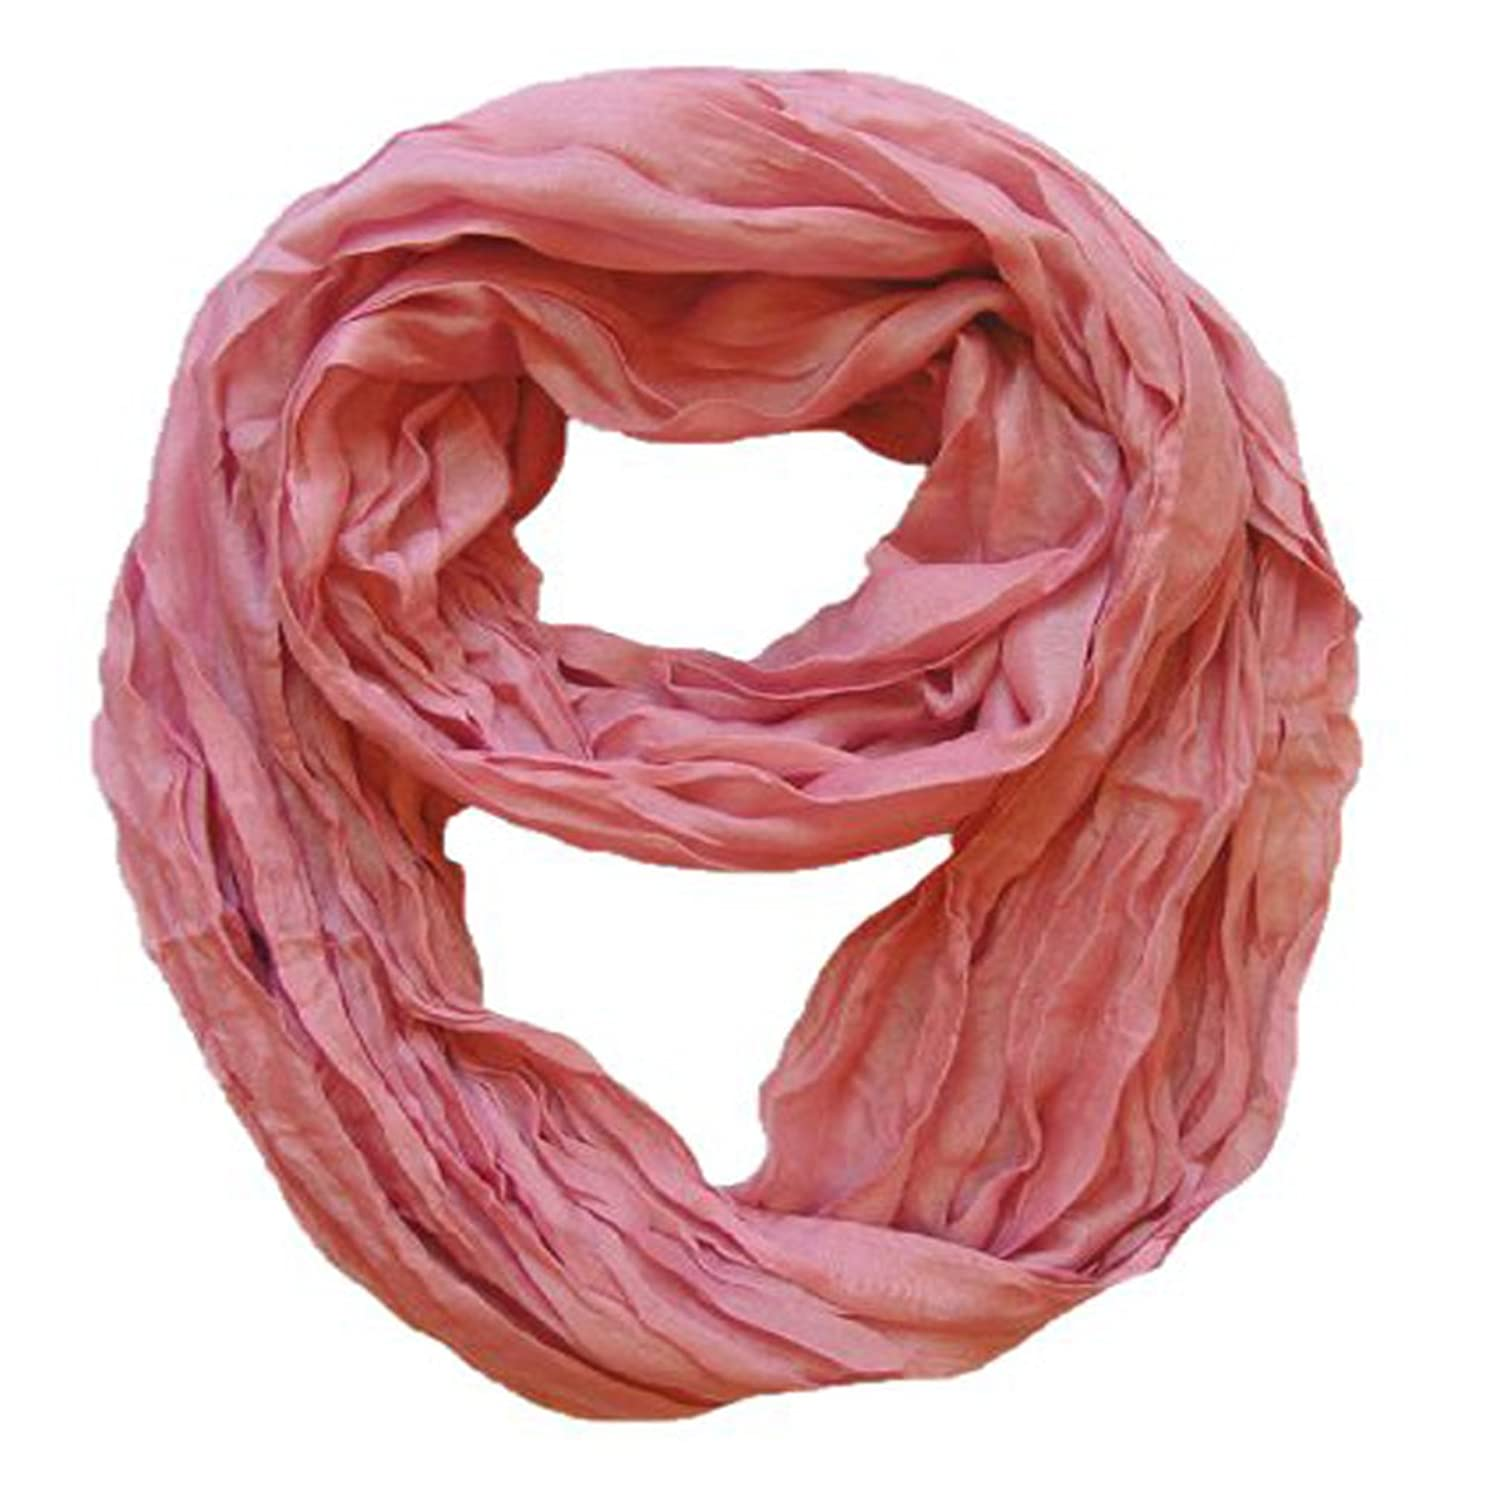 Peach Couture Fashion Lightweight Crinkled Infinity Loop Scarf Neon Faded Ombre